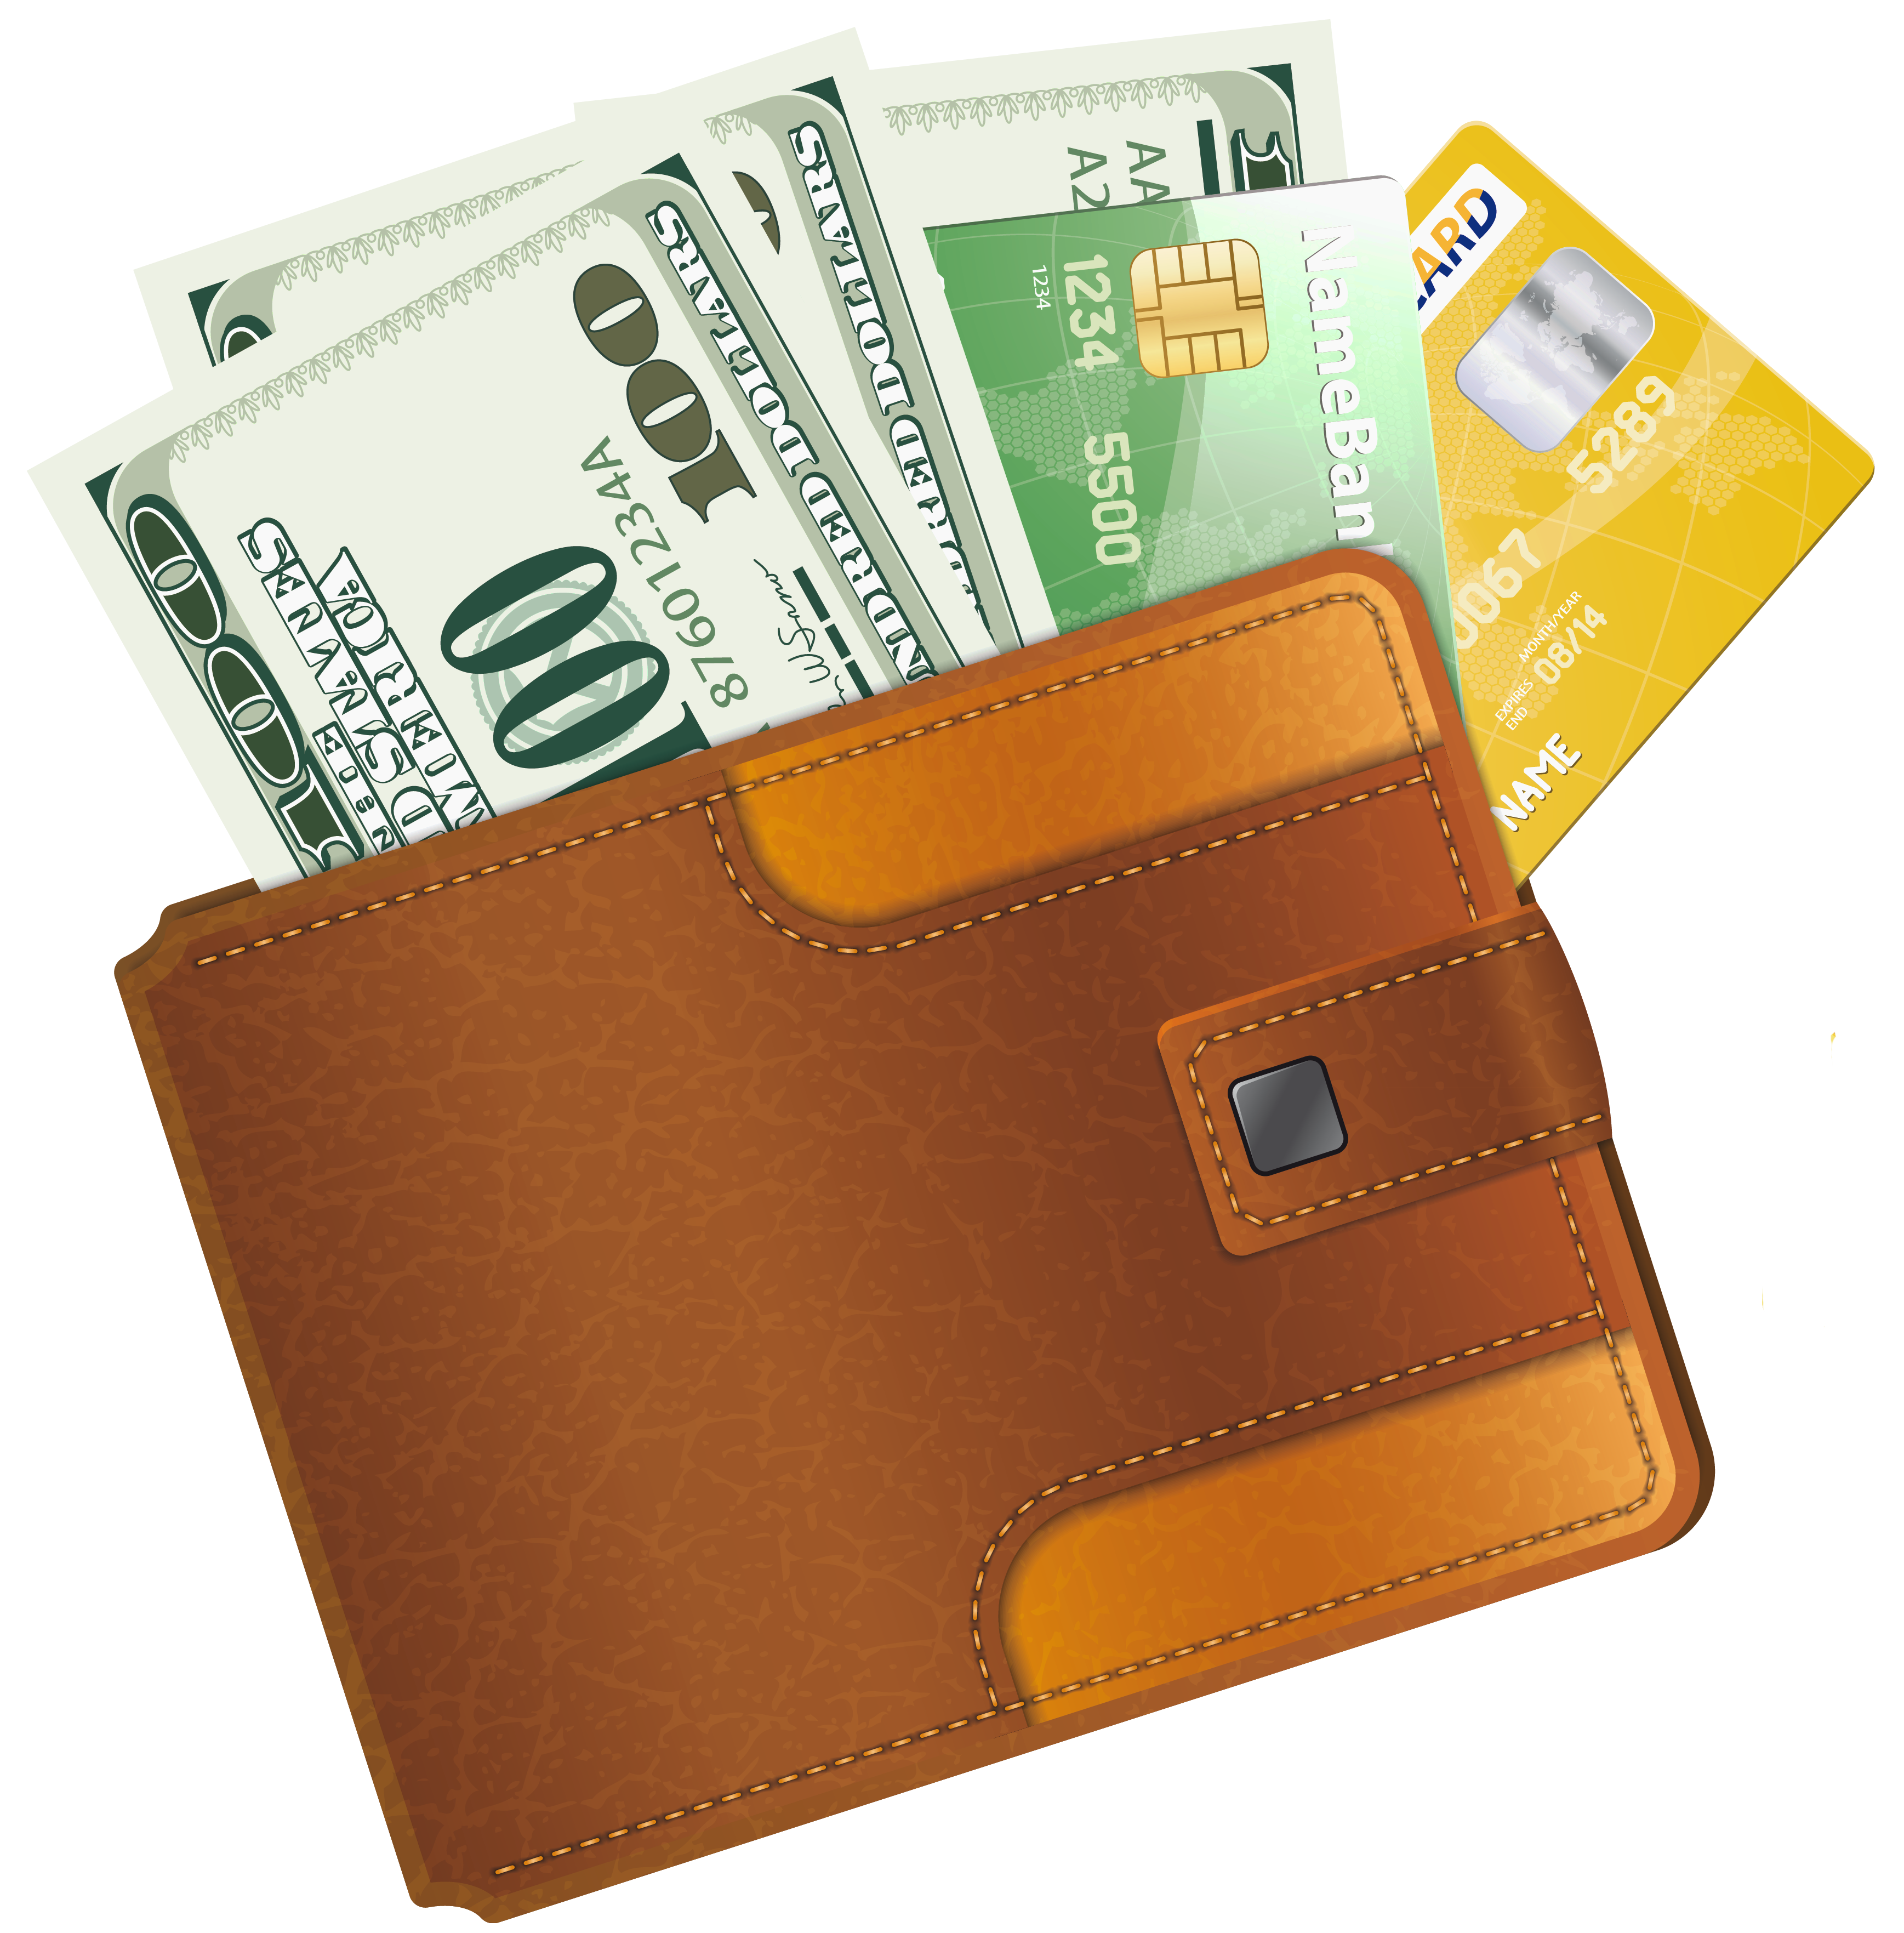 Wallet vector coloring. With credit cards clipart